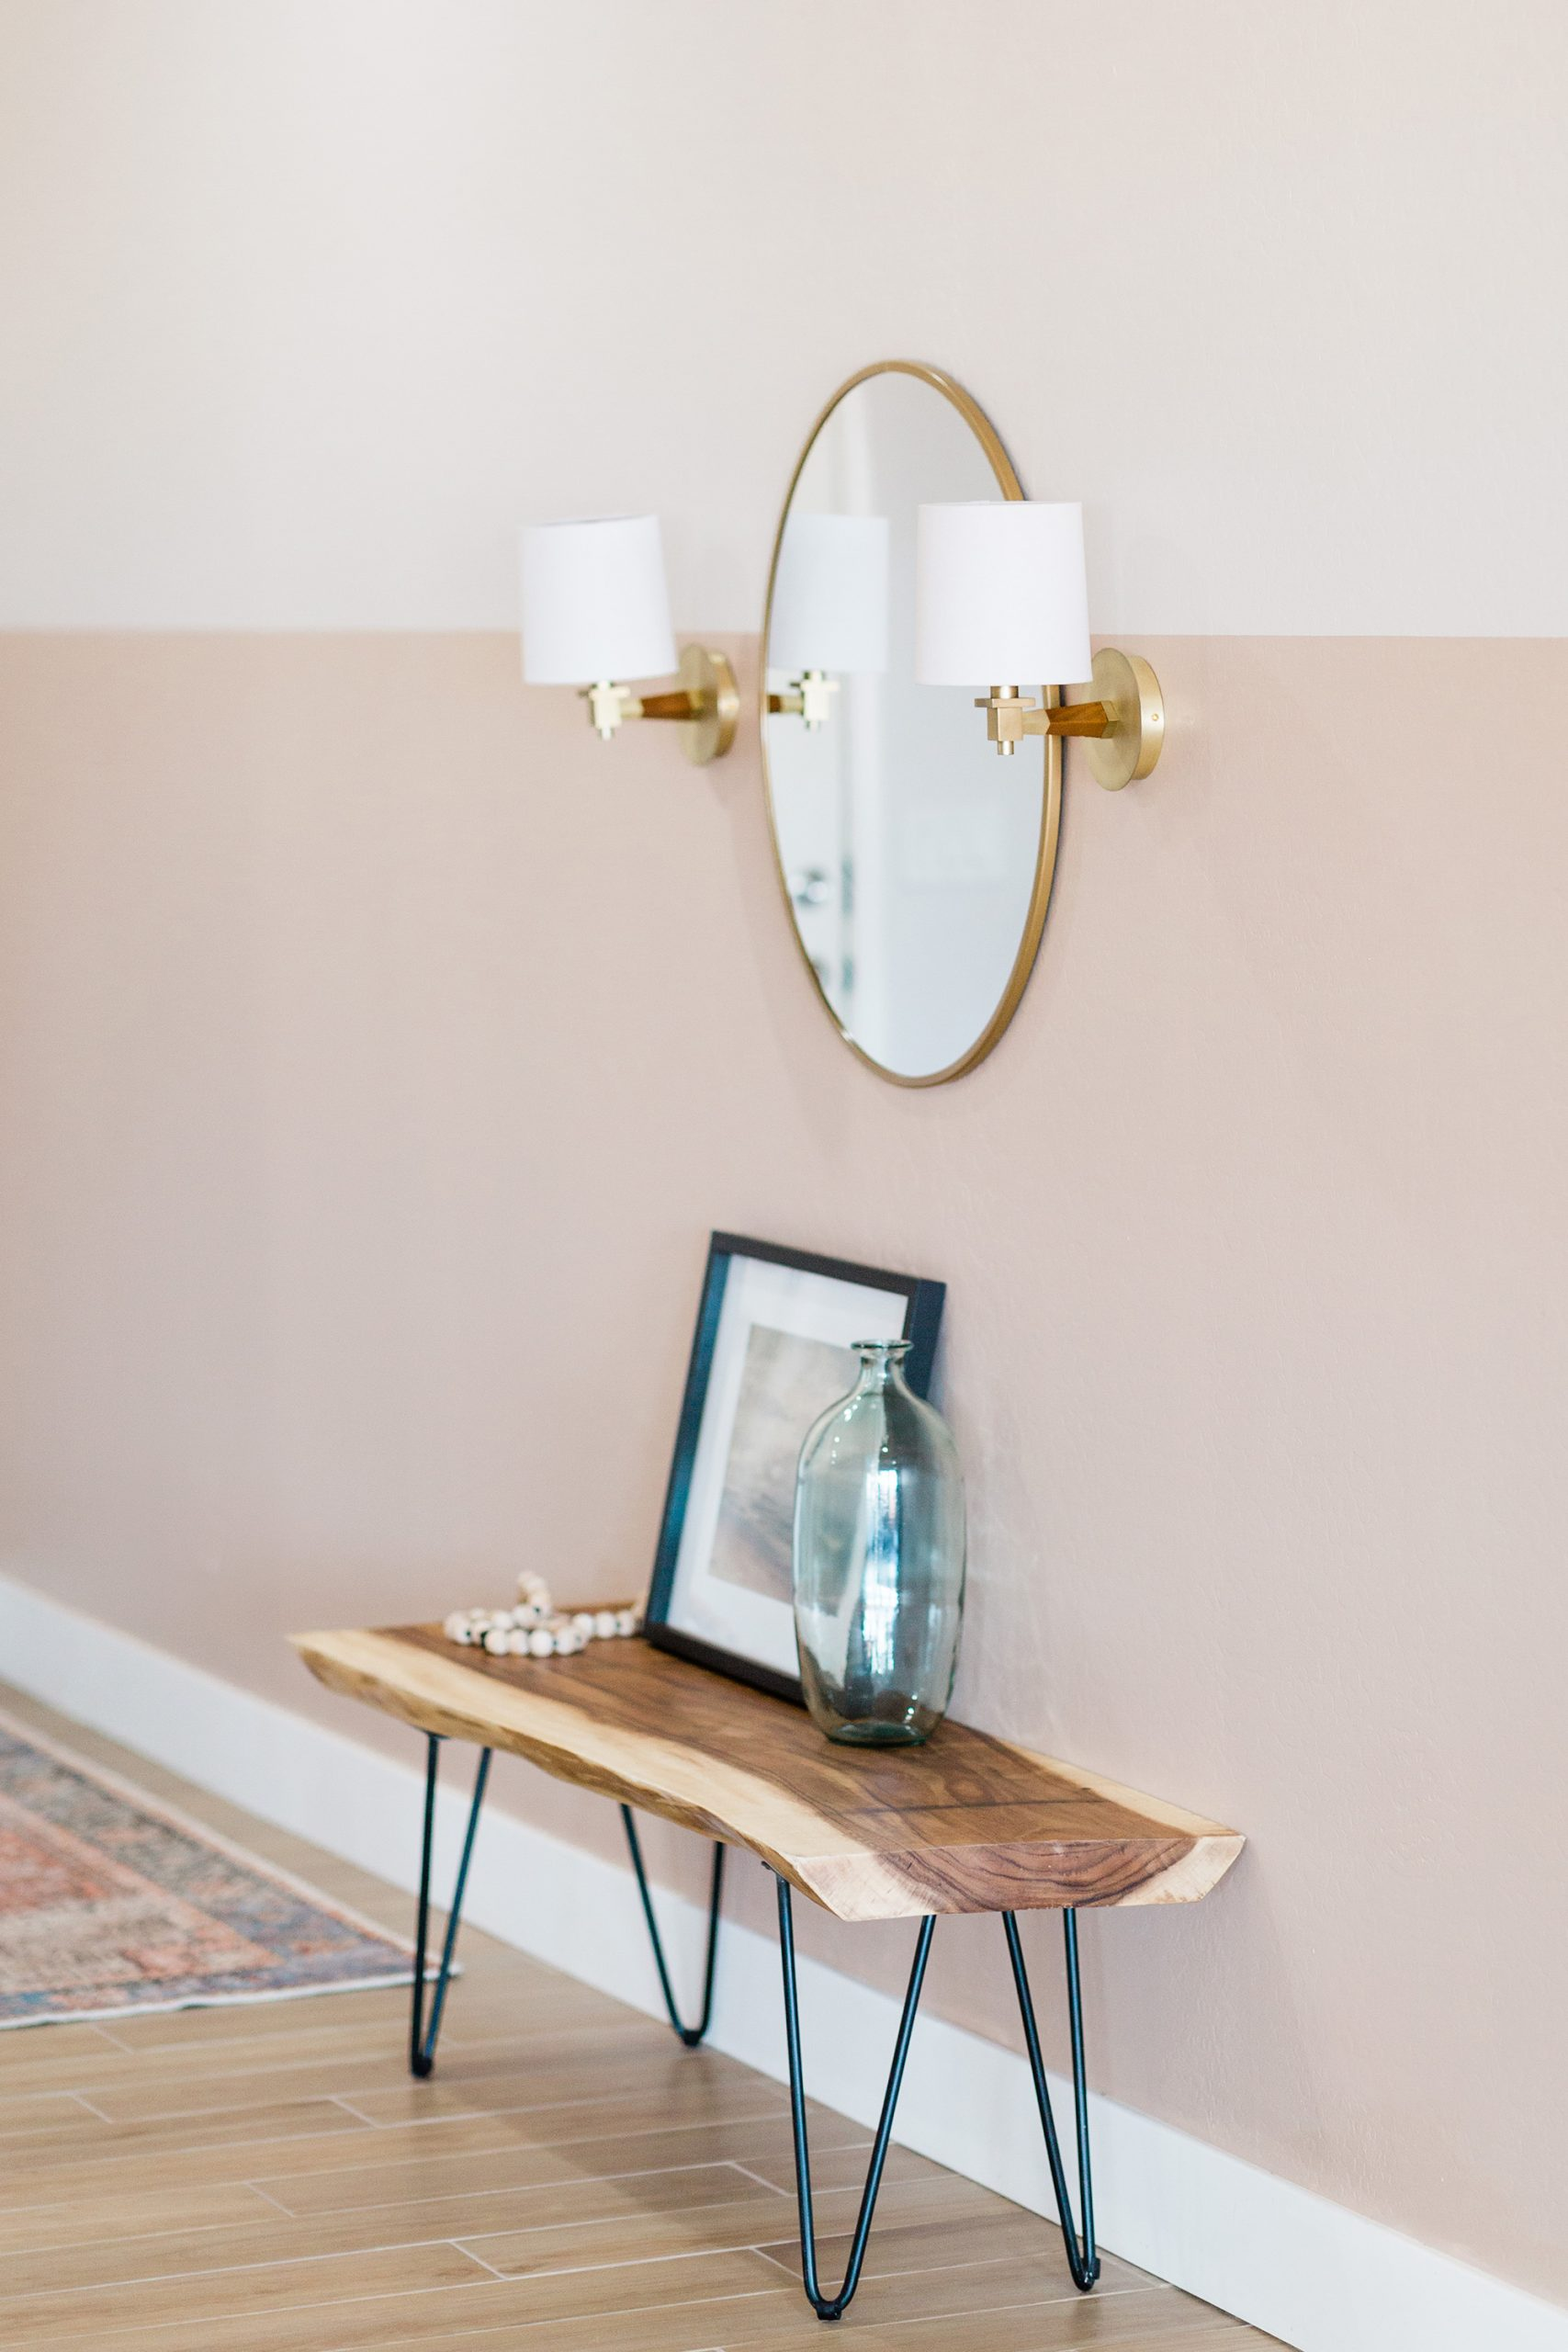 9 Small Ways I'm Saving Up for A House